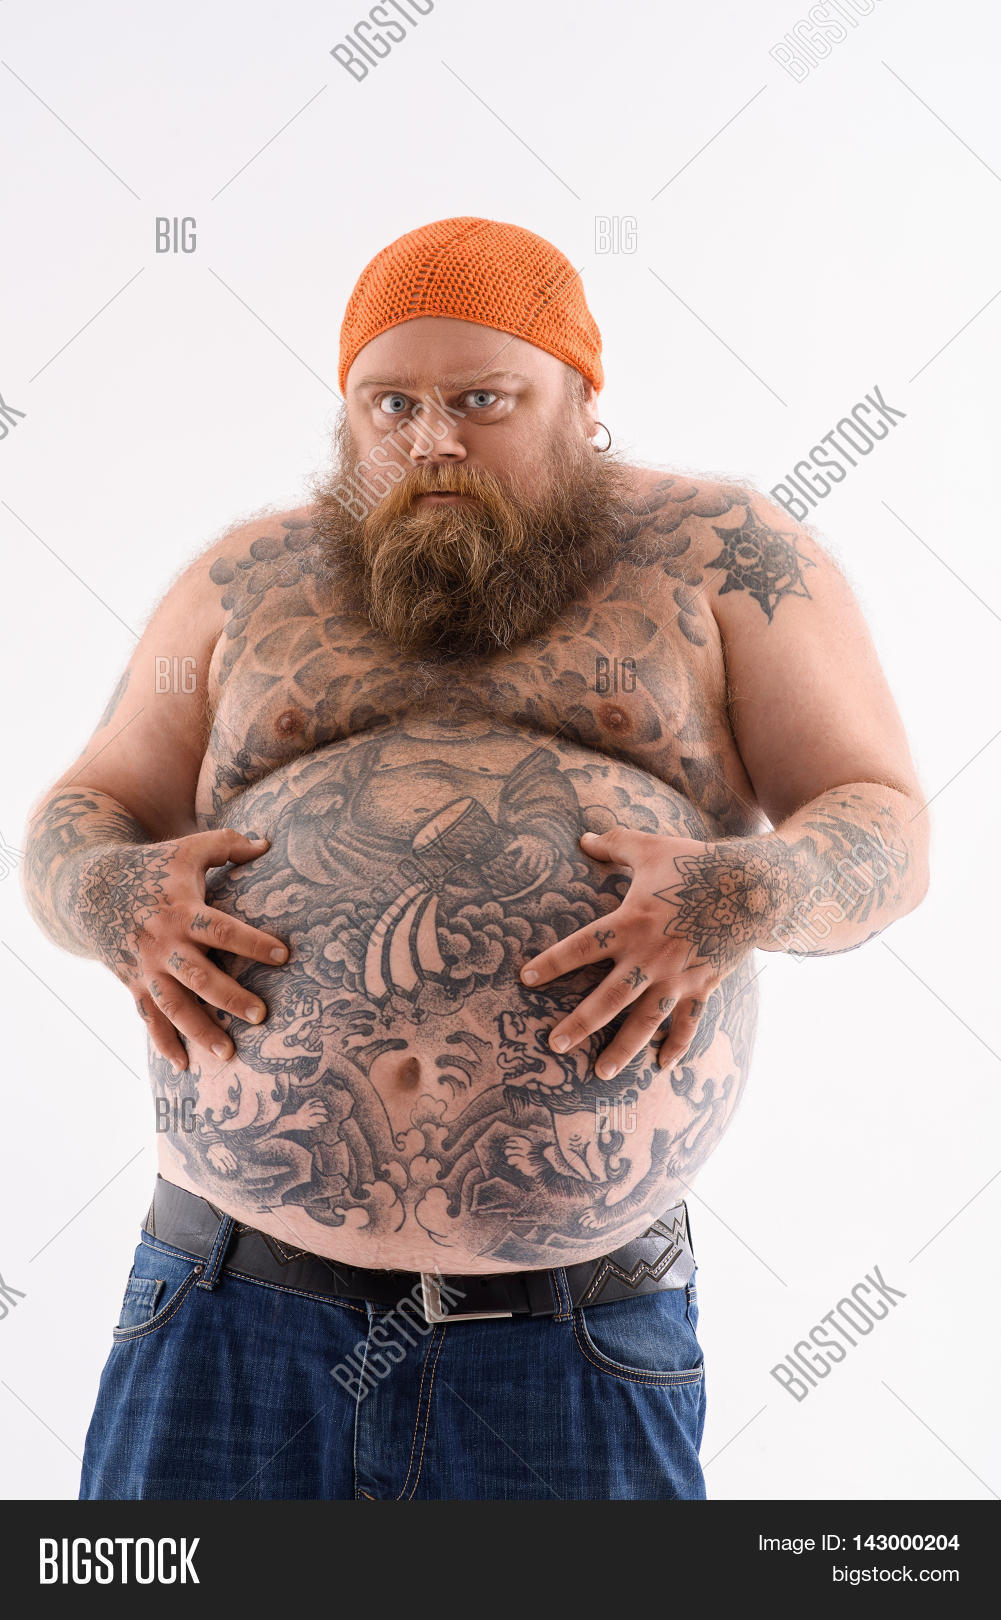 Very hungry fat man touching his image photo bigstock for Naked men tattoo